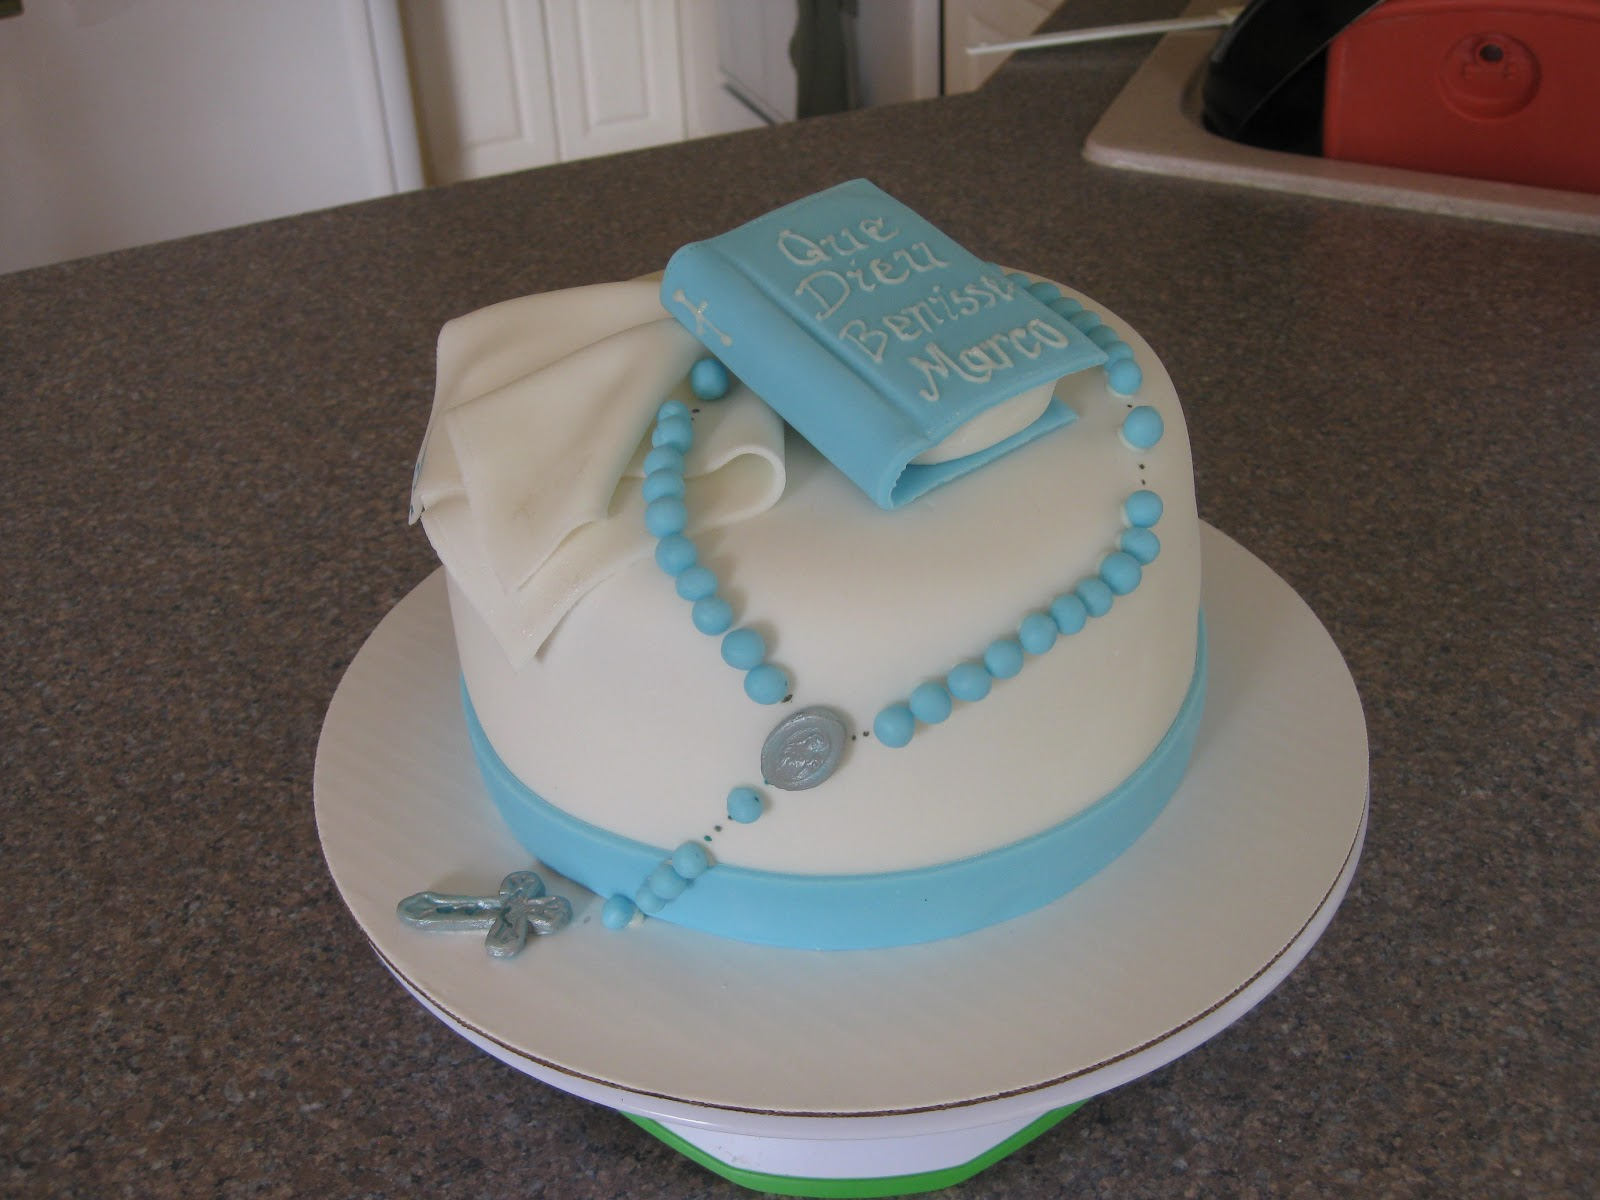 Polystyrene close book for cake design